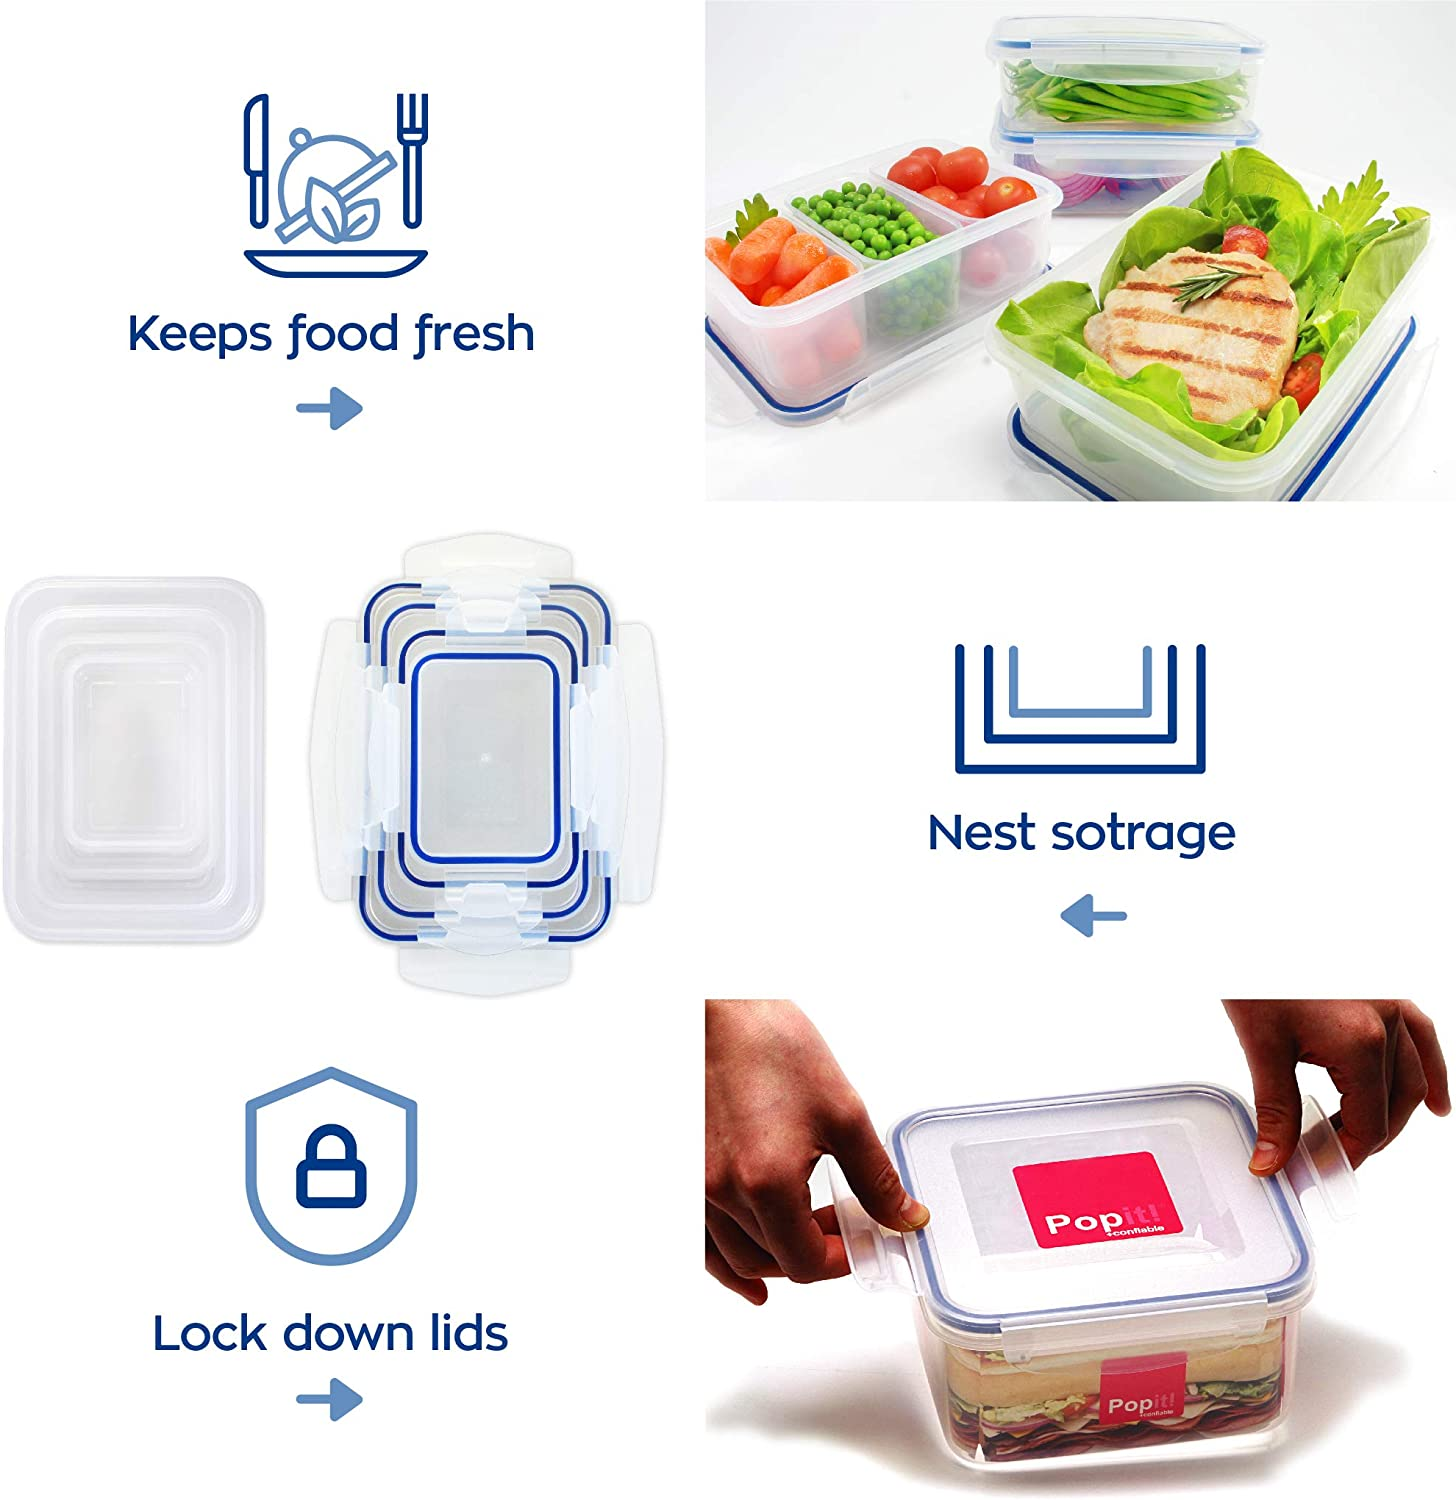 Popit! Rectangular Food Container Meal Prep Set 4 x 4.6 Cup Containers + 3 divisions included, BPA Free, FDA Approved, 100% Leak Proof, Microwave, Freezer, Dishwasher Safe, by Popit!